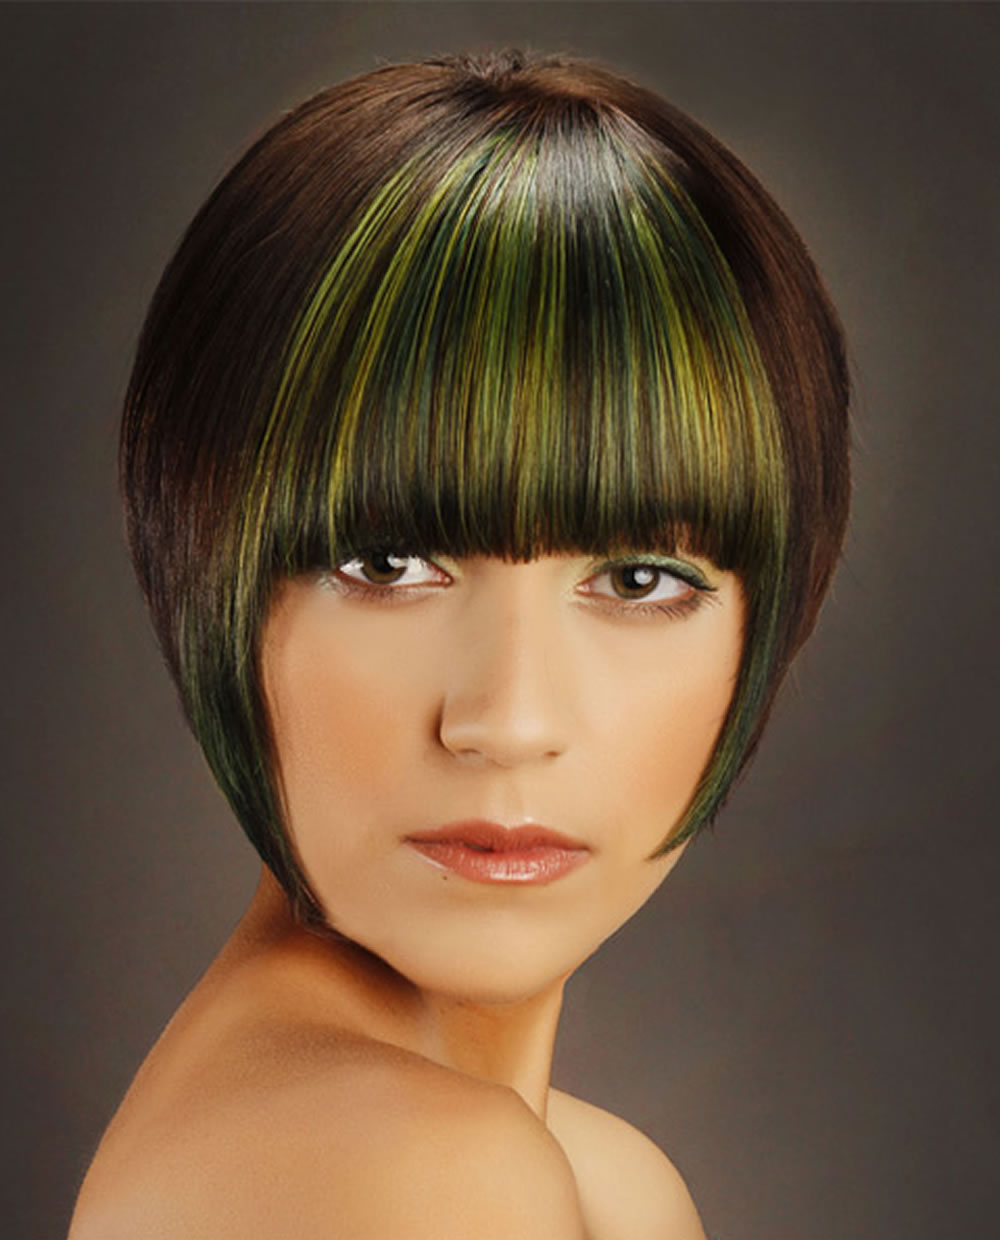 Straight Bob Haircut With Bangs 2018 2019 – Hairstyles With Straight Bob Hairstyles With Bangs (View 17 of 20)